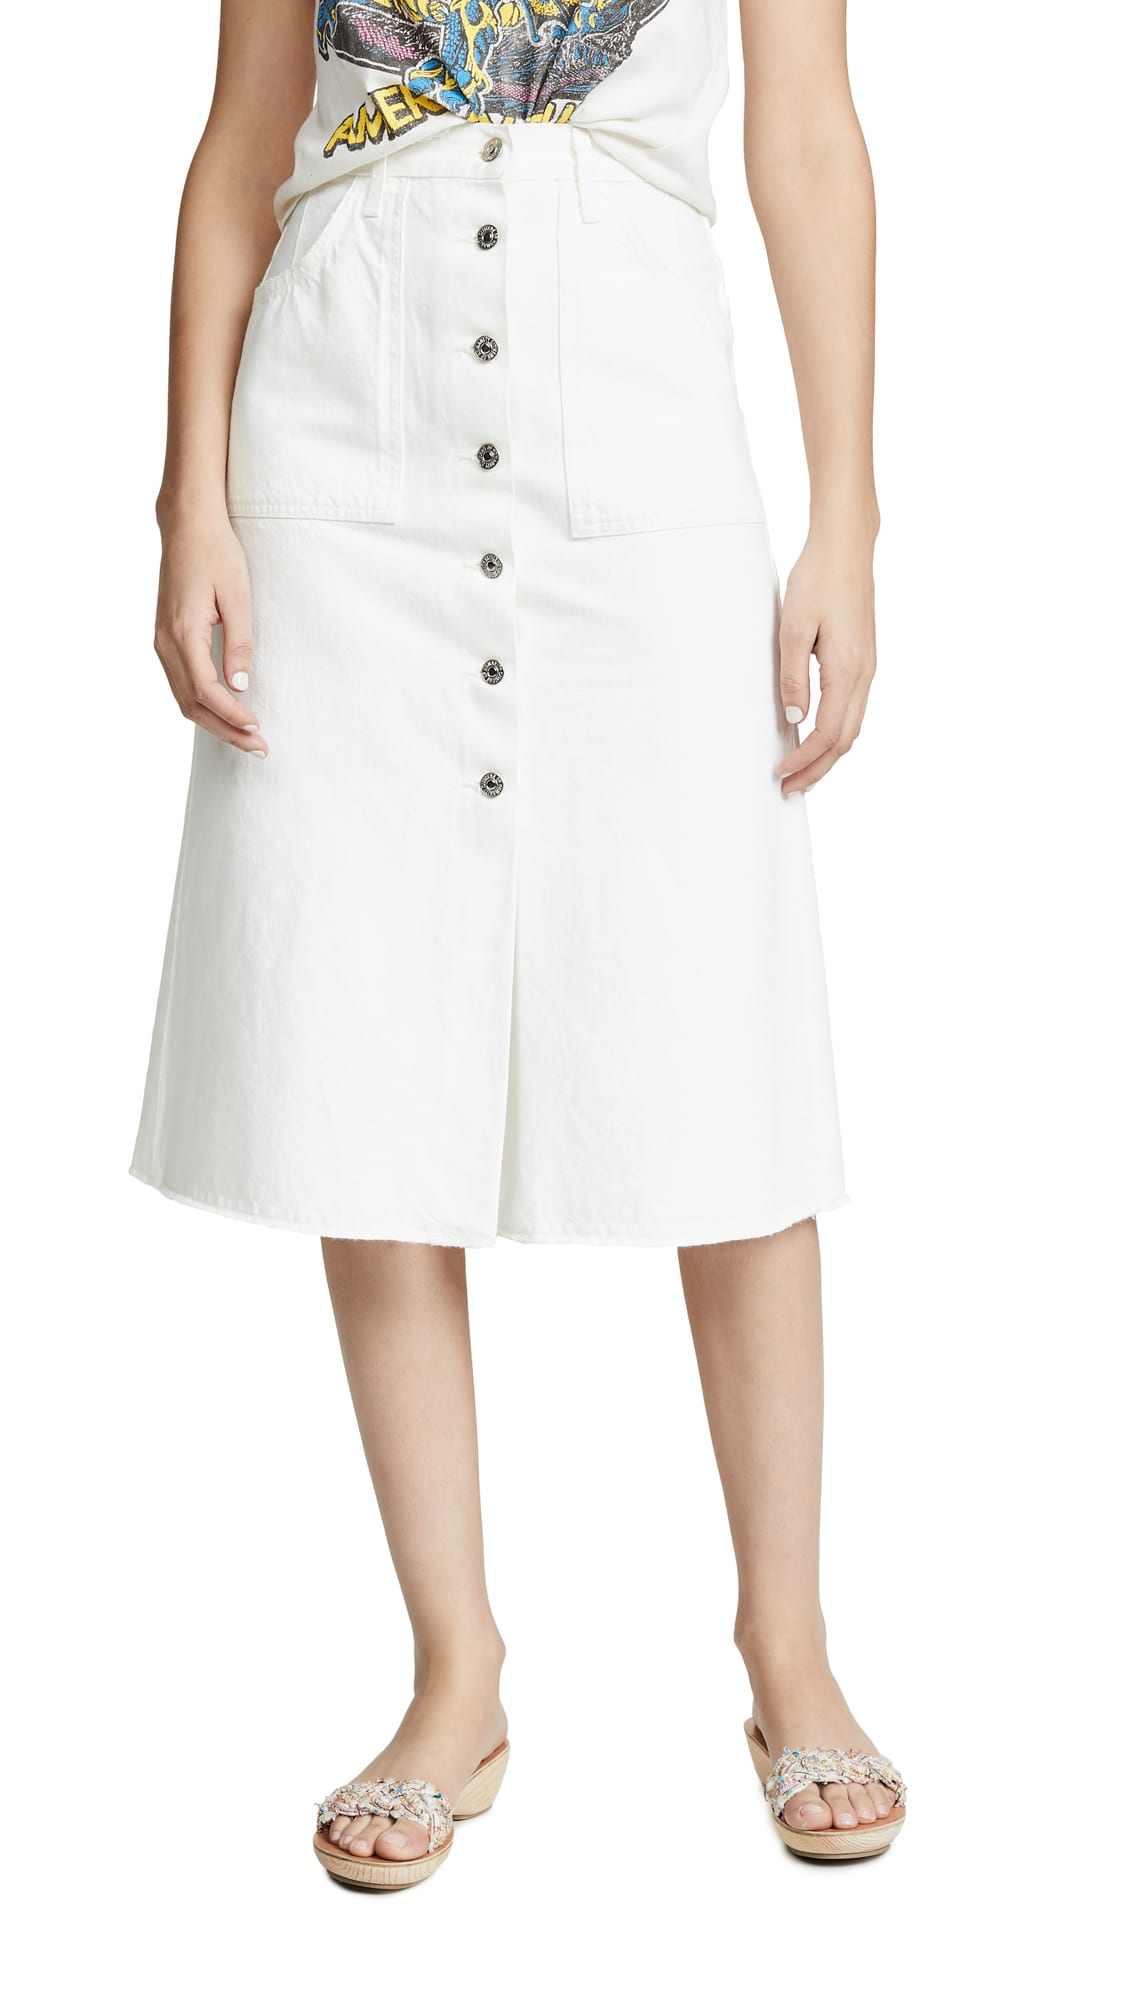 shopbop Citizens of Humanity Amelia Skirt